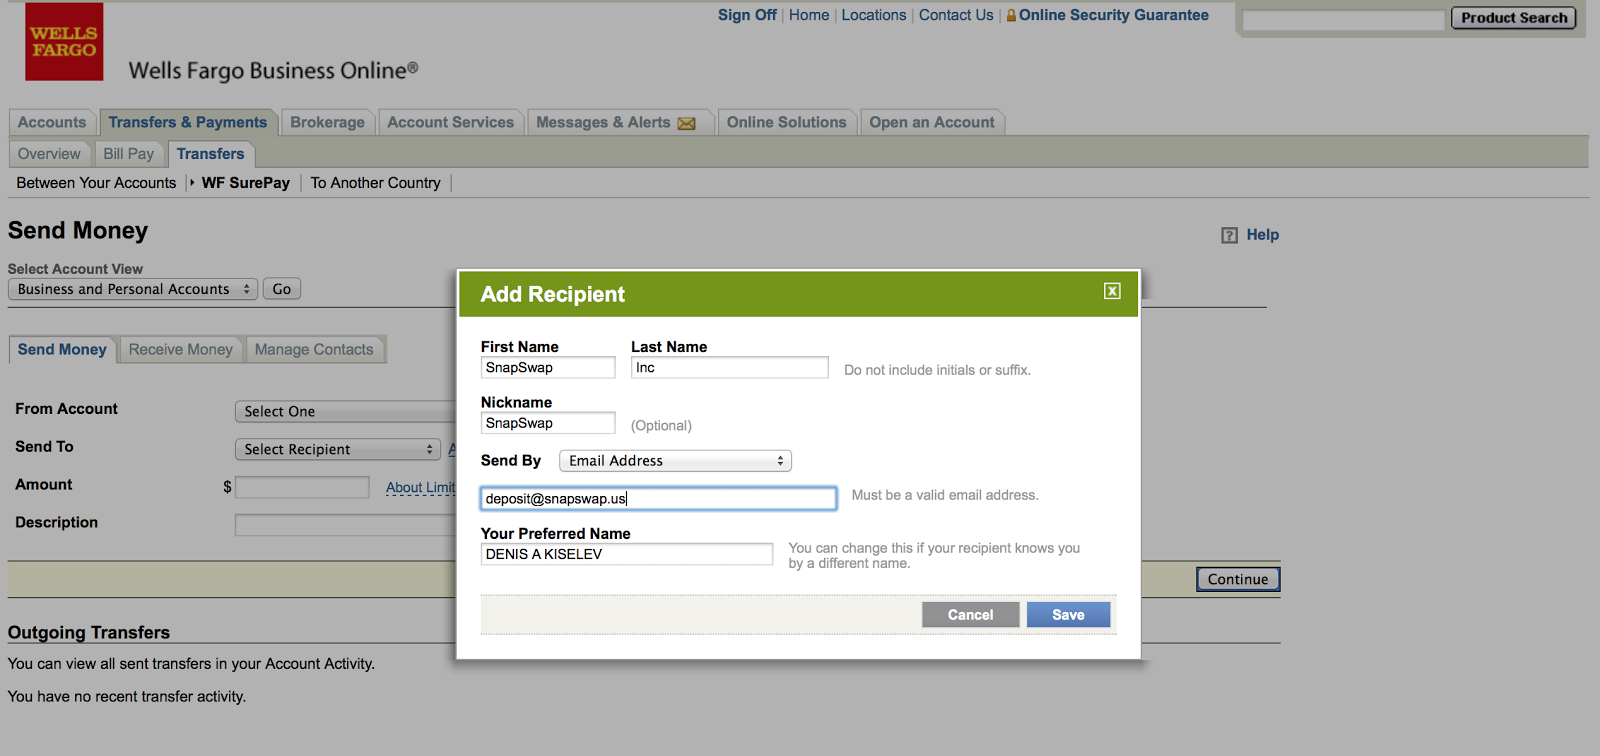 How to deposit money to our email address email for deposits ...